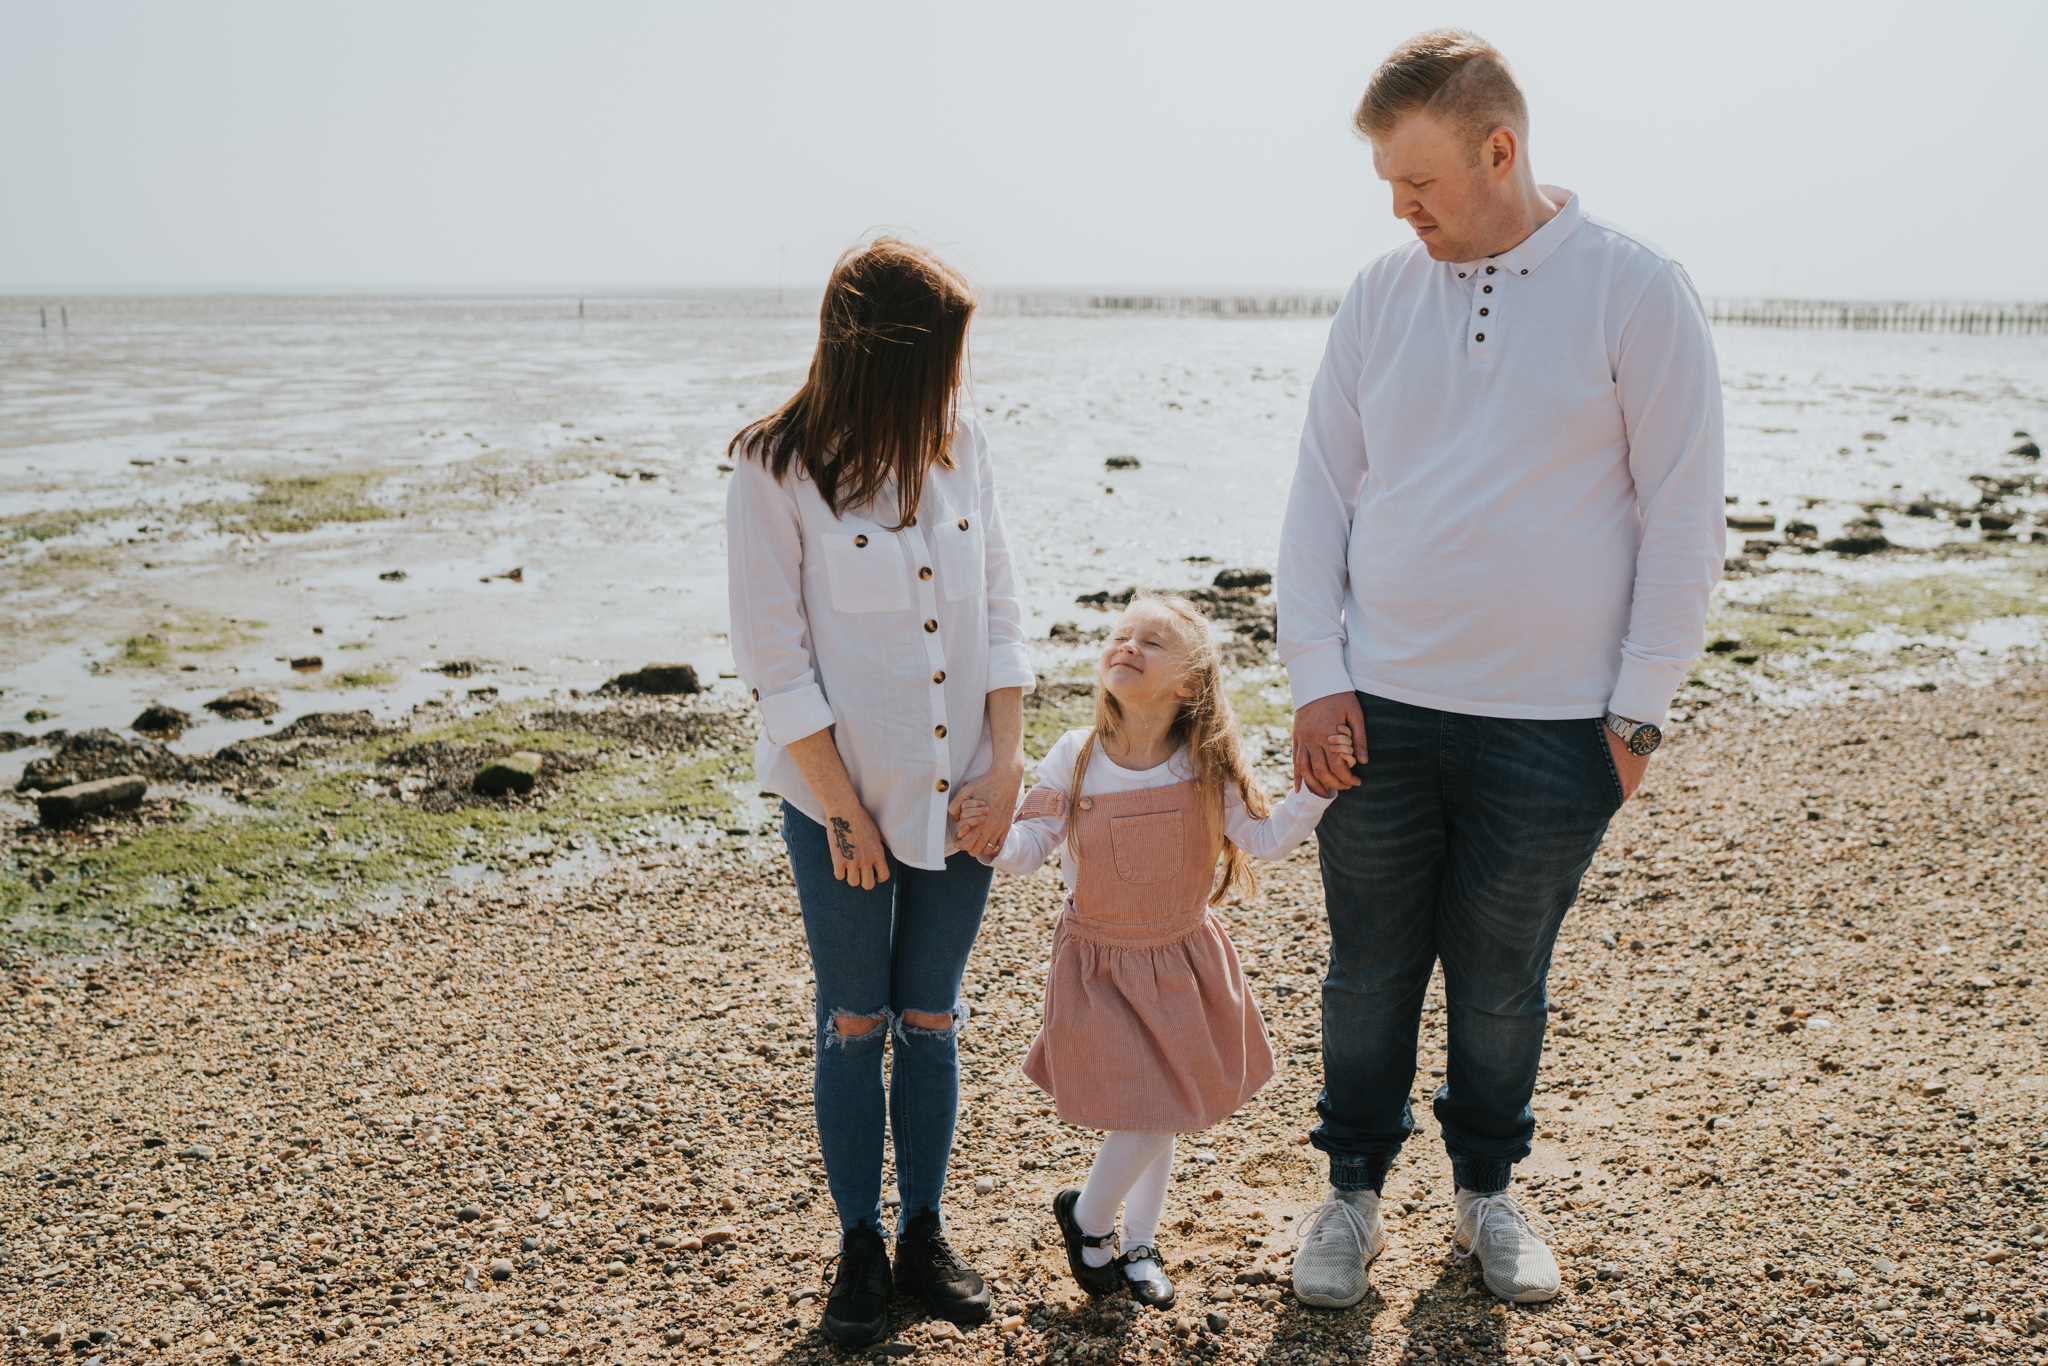 ruse-family-cudmore-grove-beach-family-session-grace-elizabeth-colchester-essex-alternative-wedding-lifestyle-photographer-essex-suffolk-devon-24.jpg